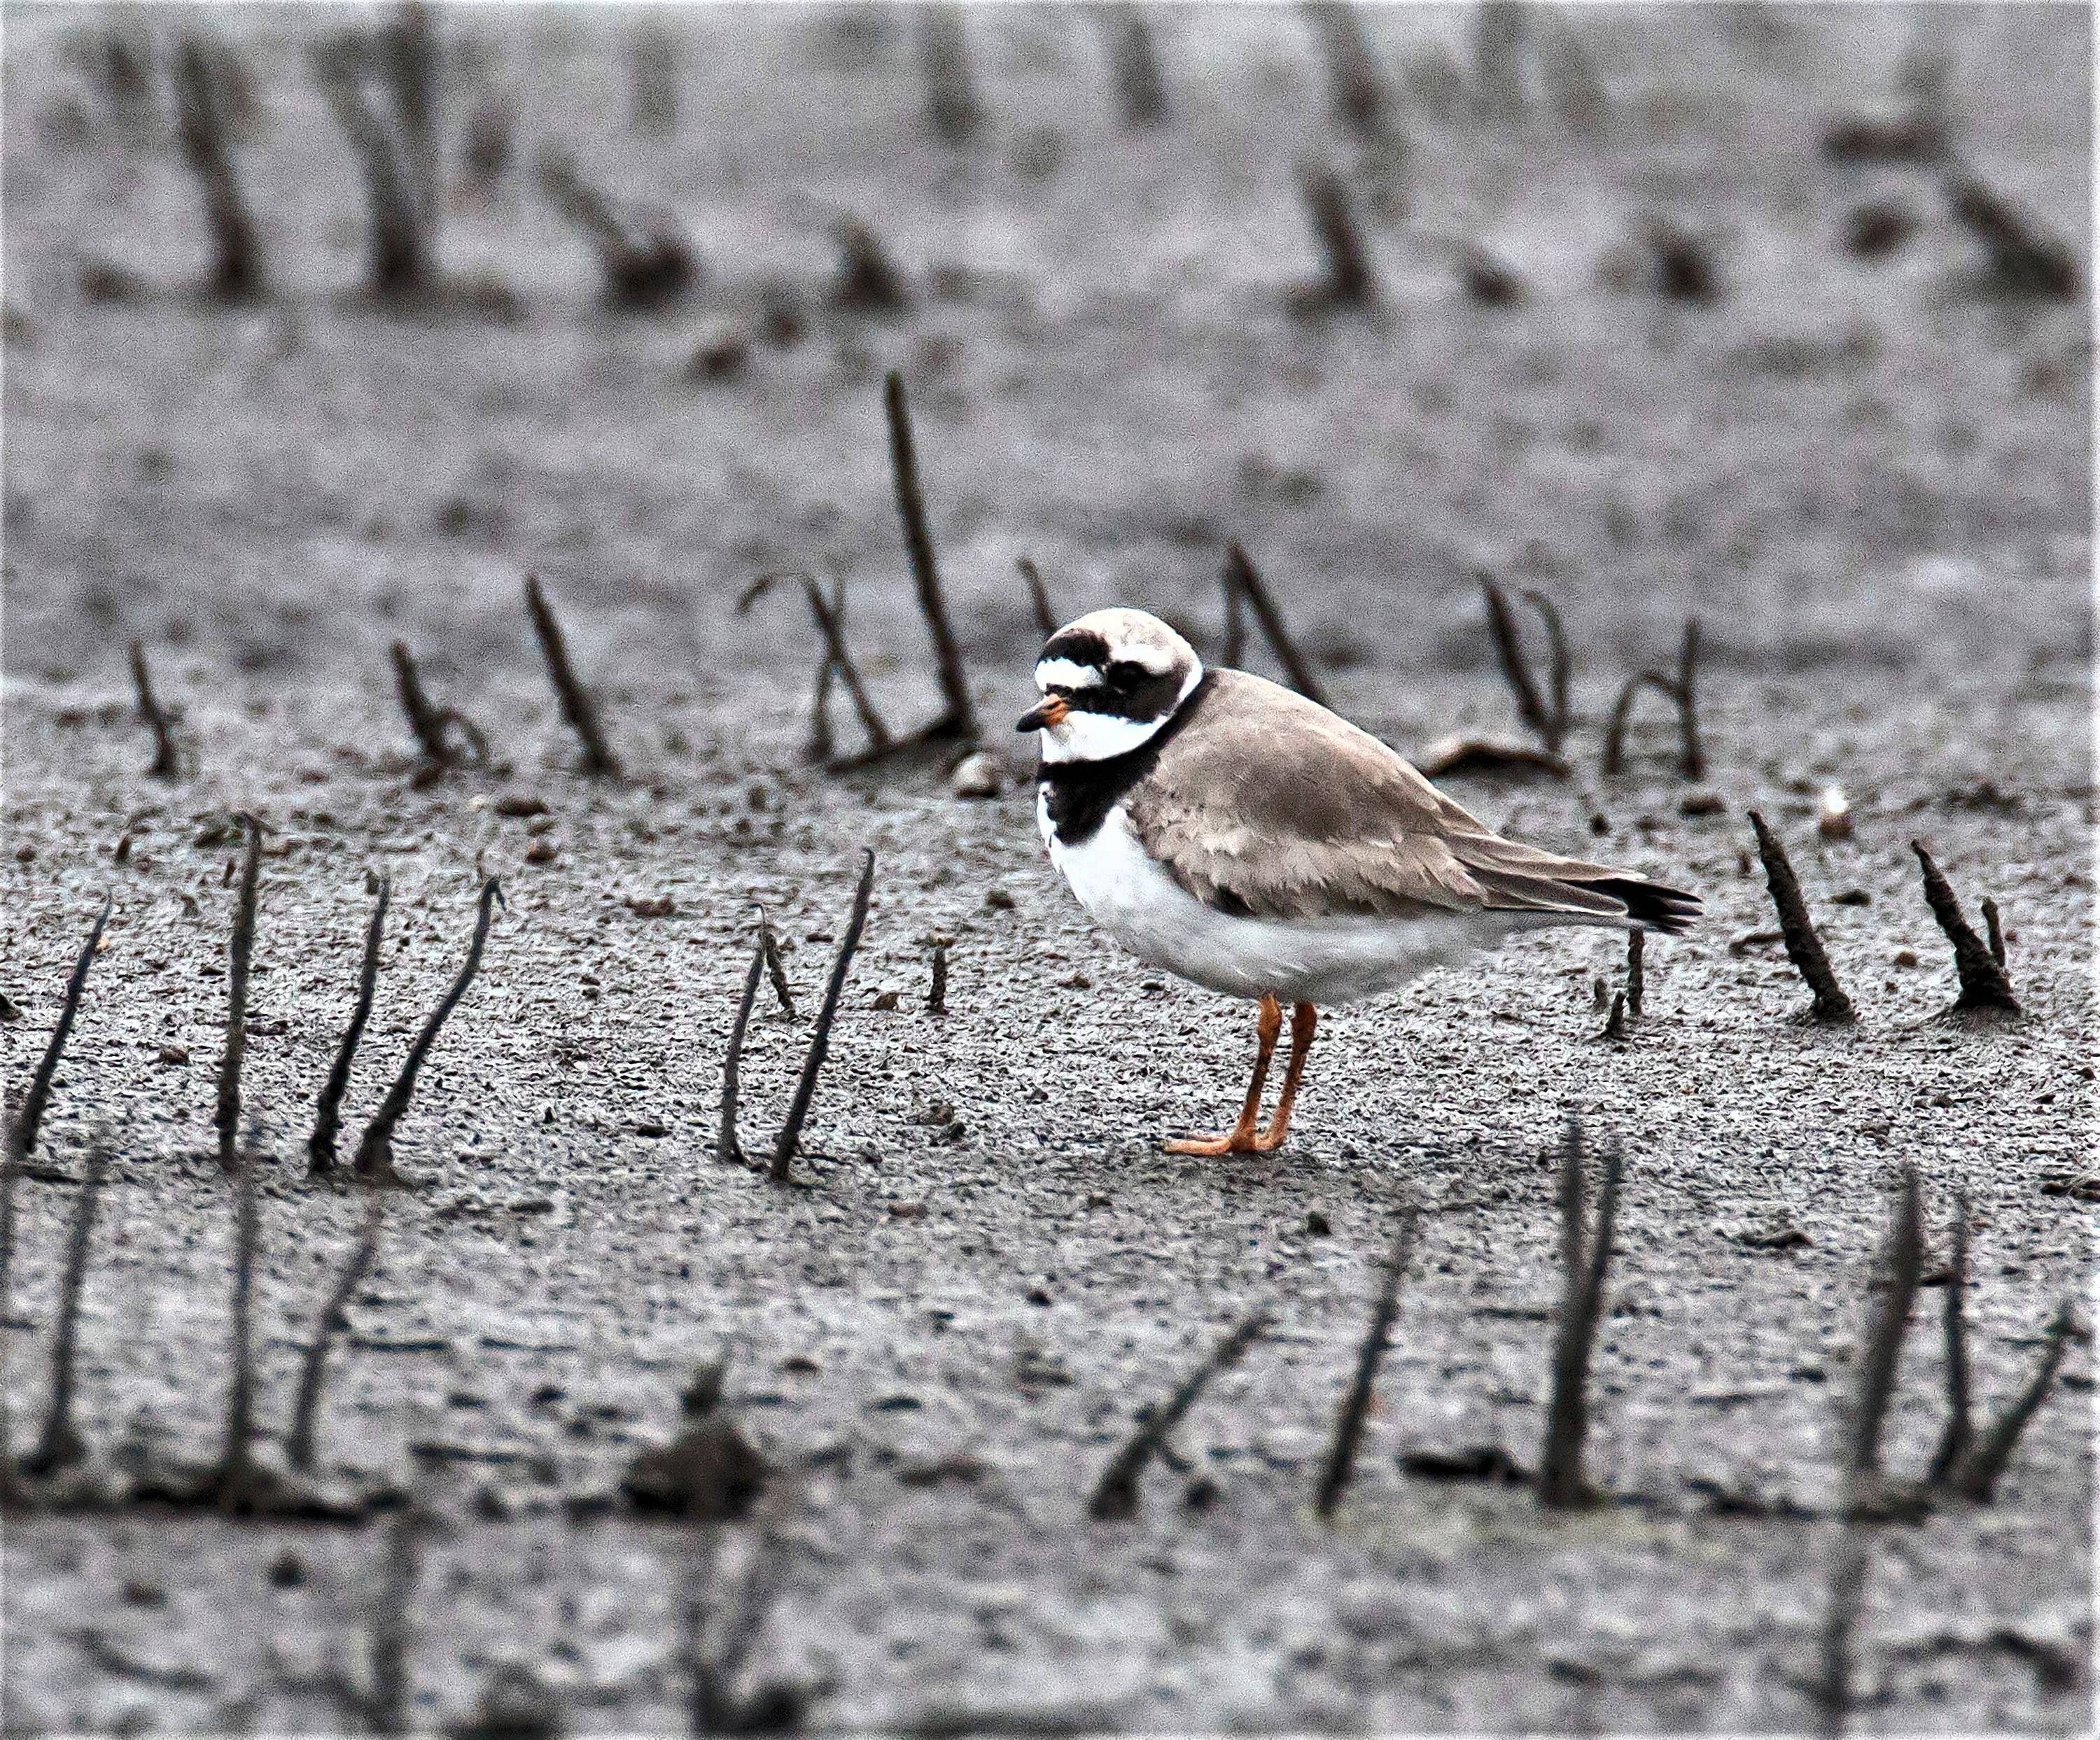 There was nothing common at all about this common ringed plover spotted south of Kankakee, a first for Illinois.